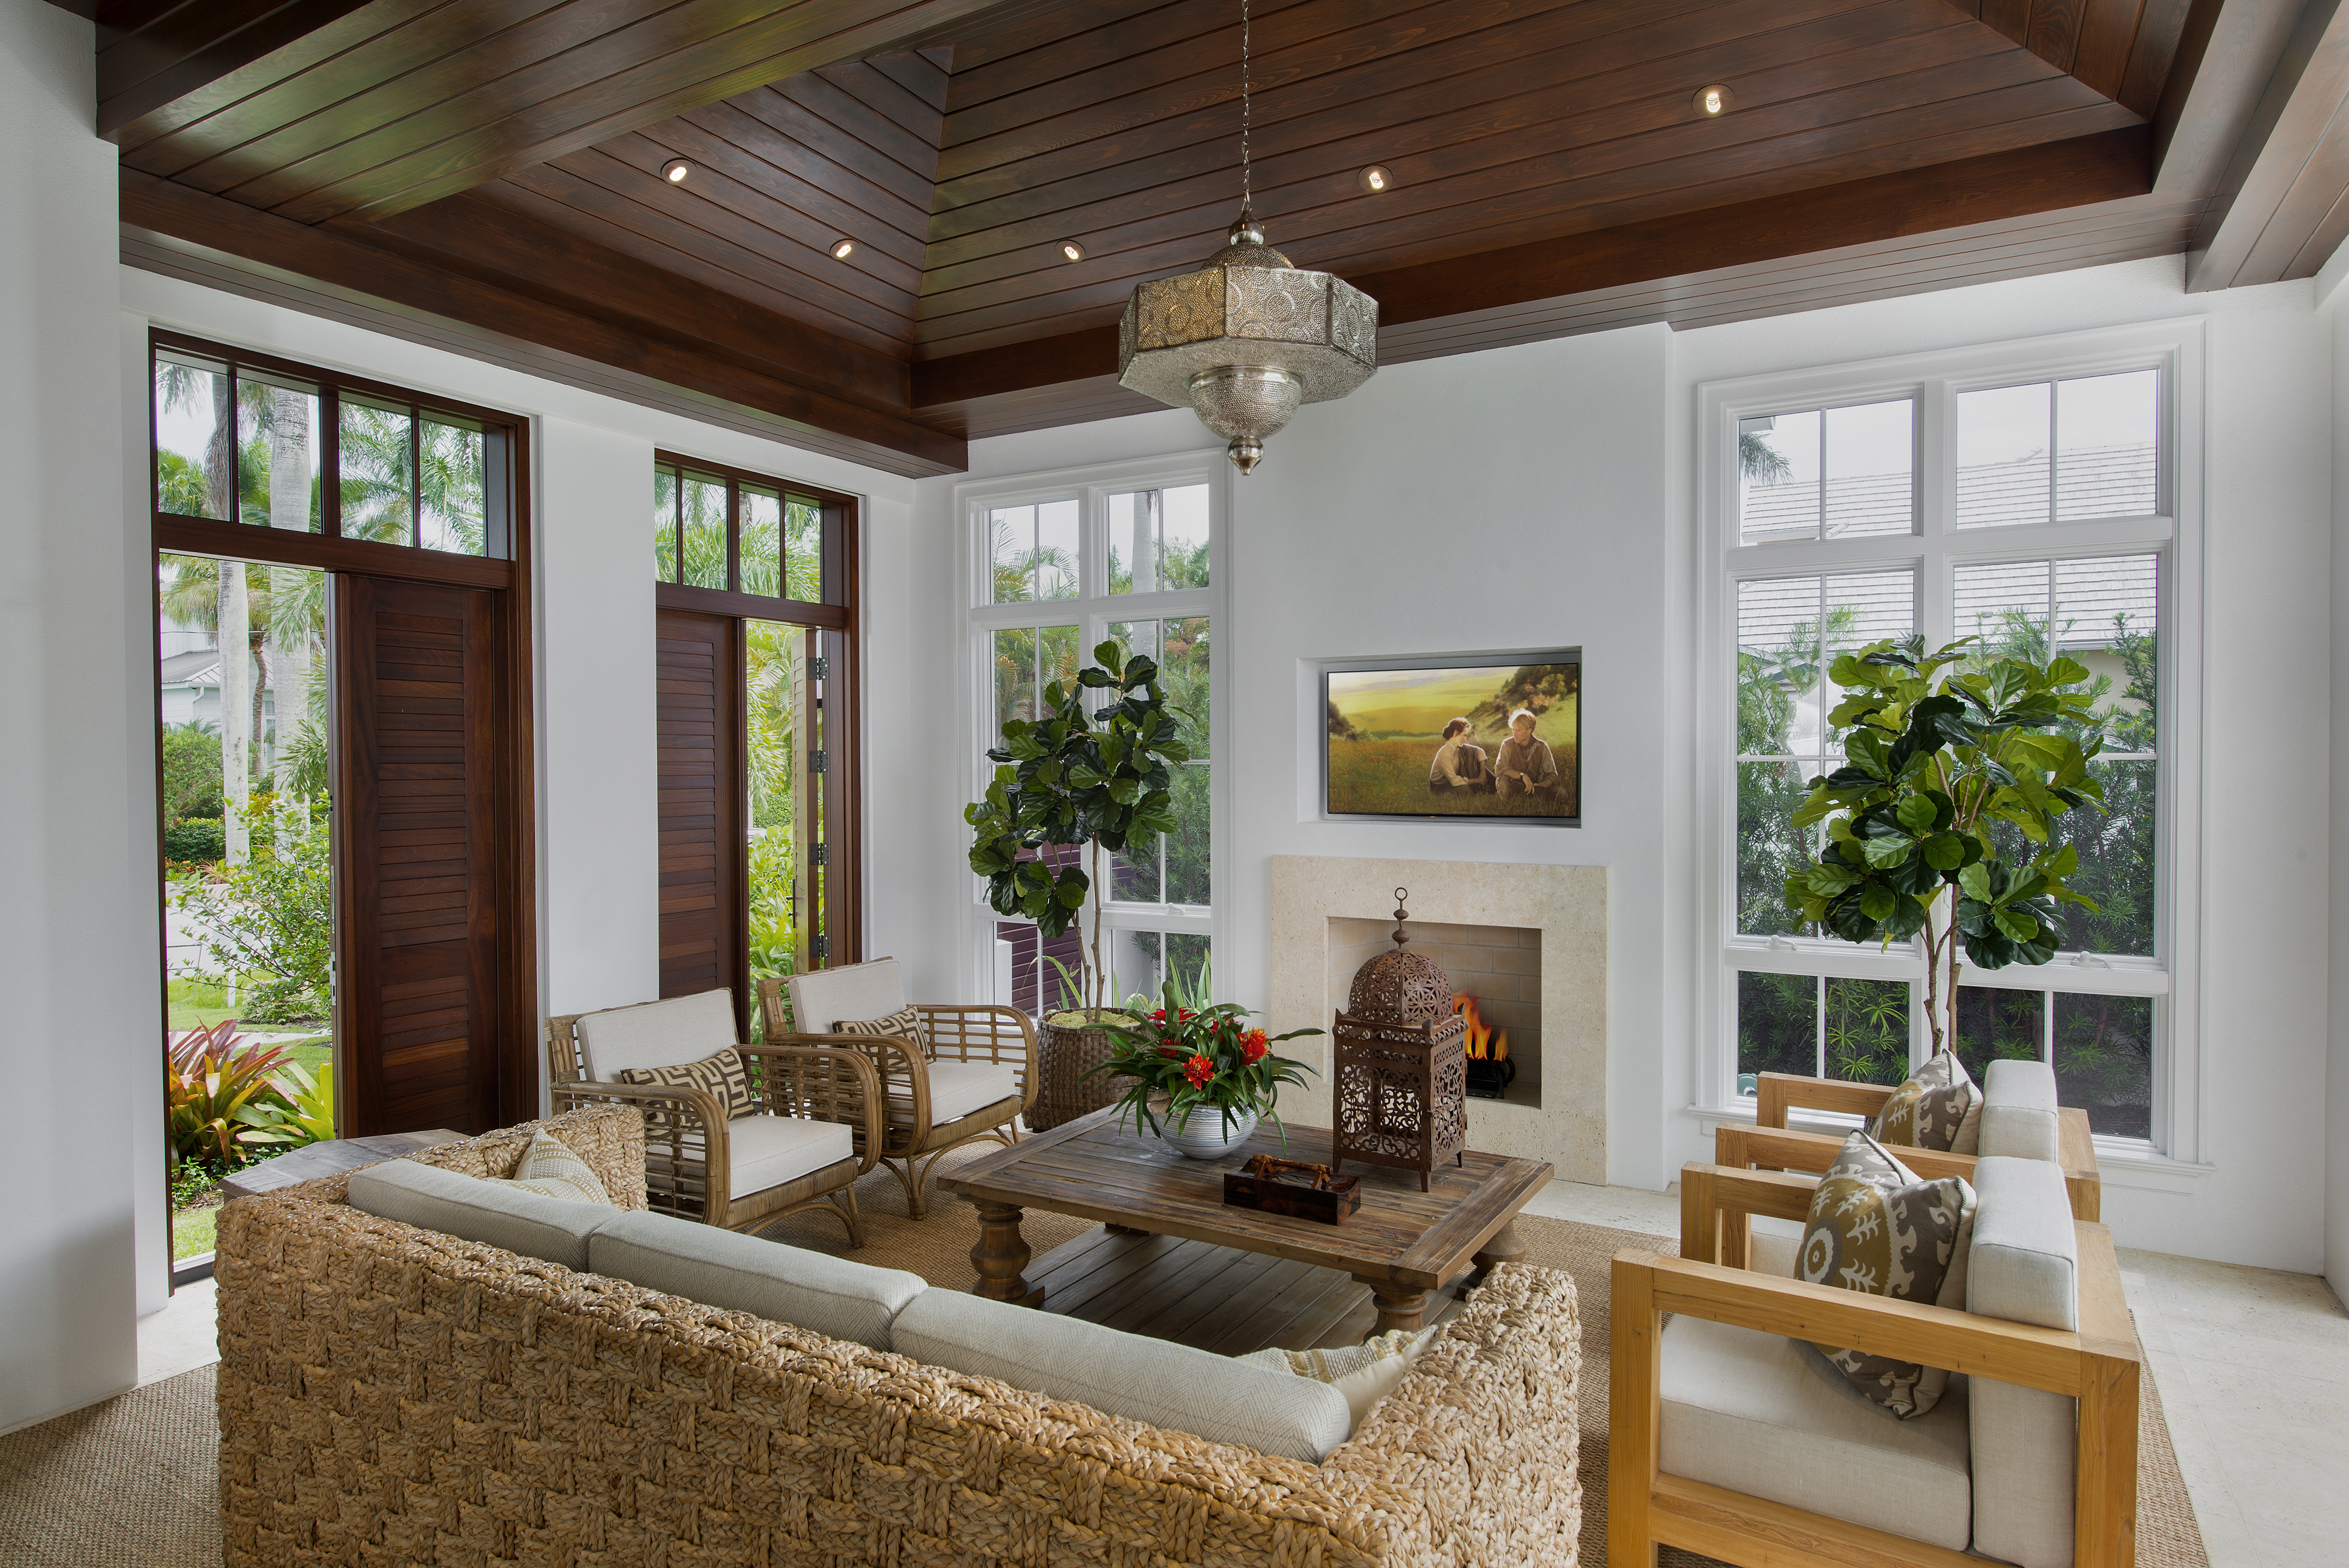 Jeffrey Fisher Home Luxury Interior Design Imagined Home Decor Sun Room